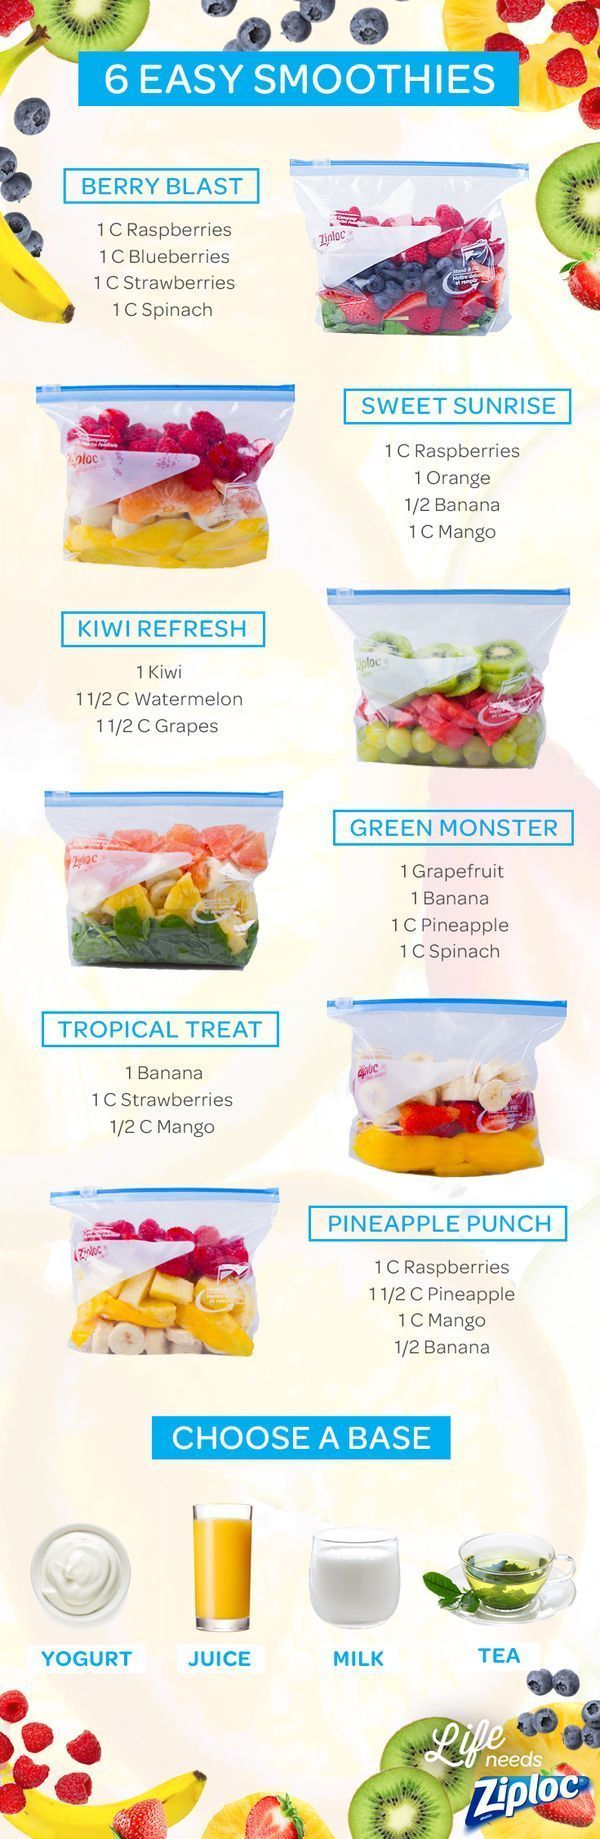 Shake up your smoothie routine with these tasty fruit and veggie combinations, featuring strawberries, raspberries, spinach, mango, banana, kiwi, and grapes. Each recipe can be pre-portioned in a Ziploc:registered: bag and frozen ahead of time. Then you can just grab a bag, let it thaw, add yogurt, juice, milk, or tea as your liquid base, and blend. These smoothie ideas are perfect for kids or your morning breakfast.